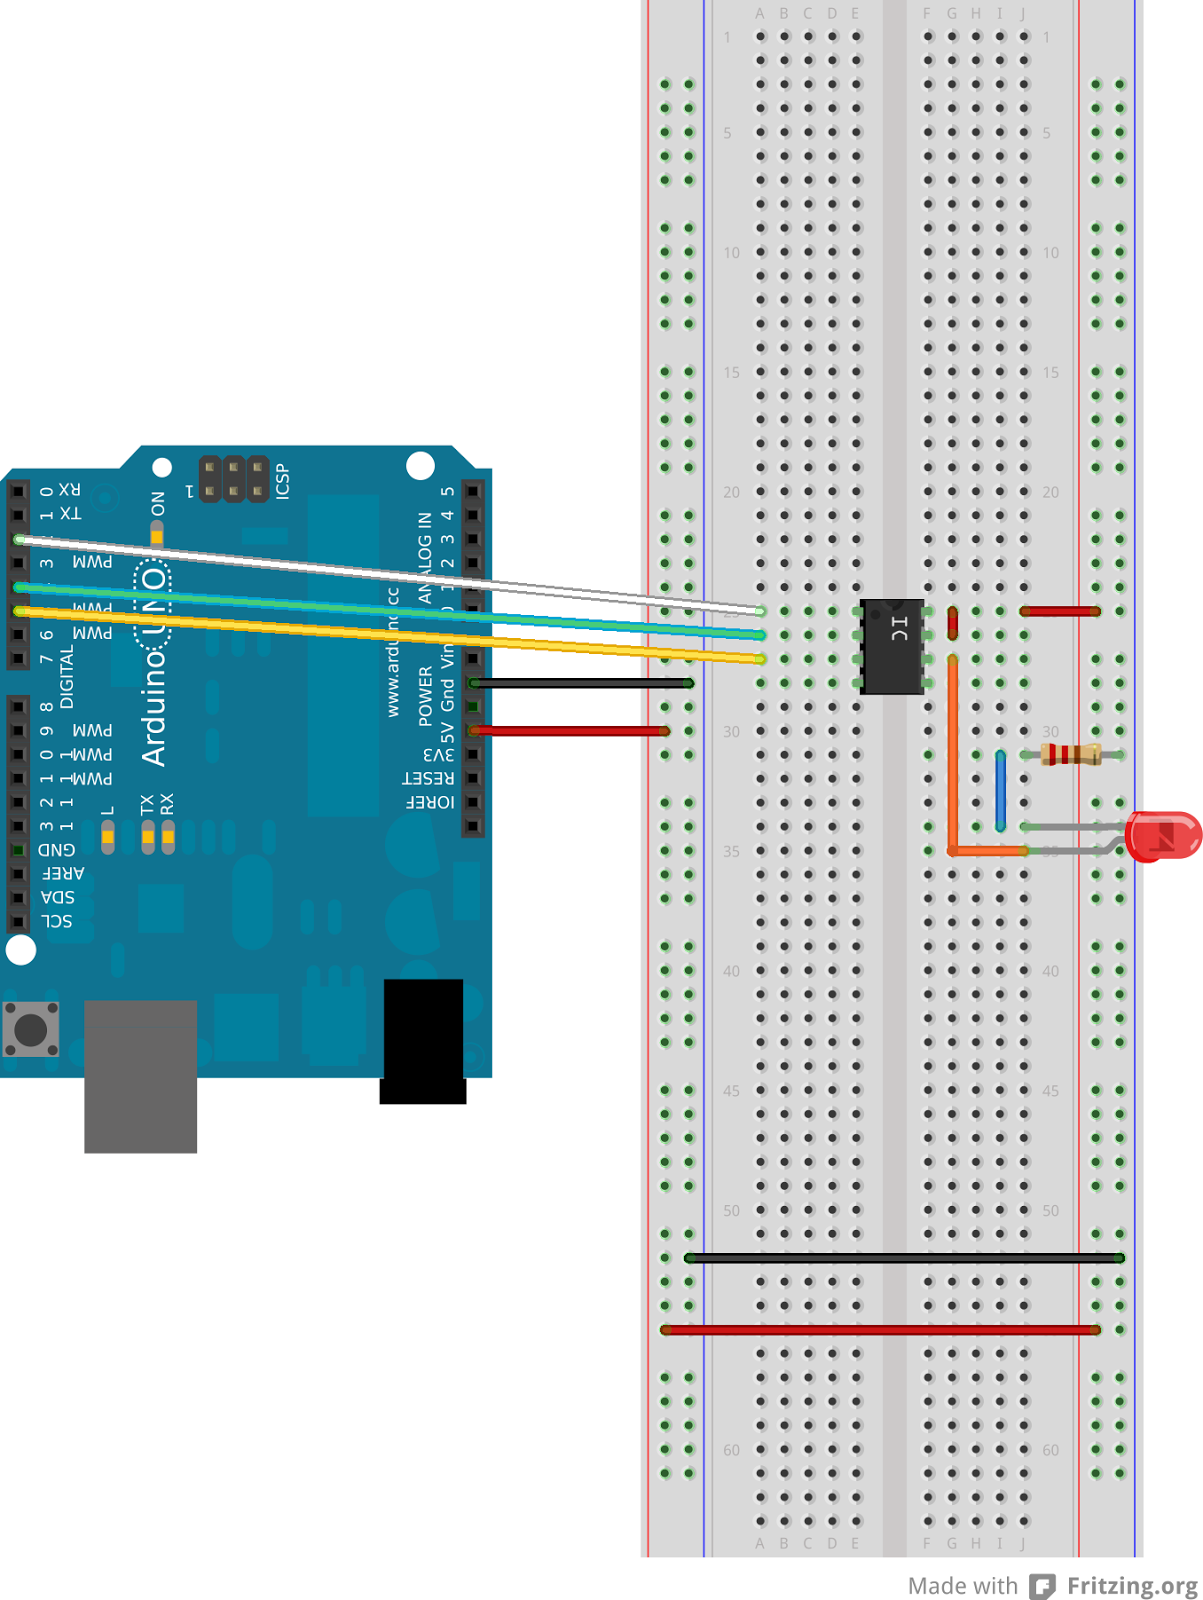 Techrm How To Control A Digital Potentiometer Using Arduino Uno Amplifier With The Controlled By Circuit Schematic Fritzing